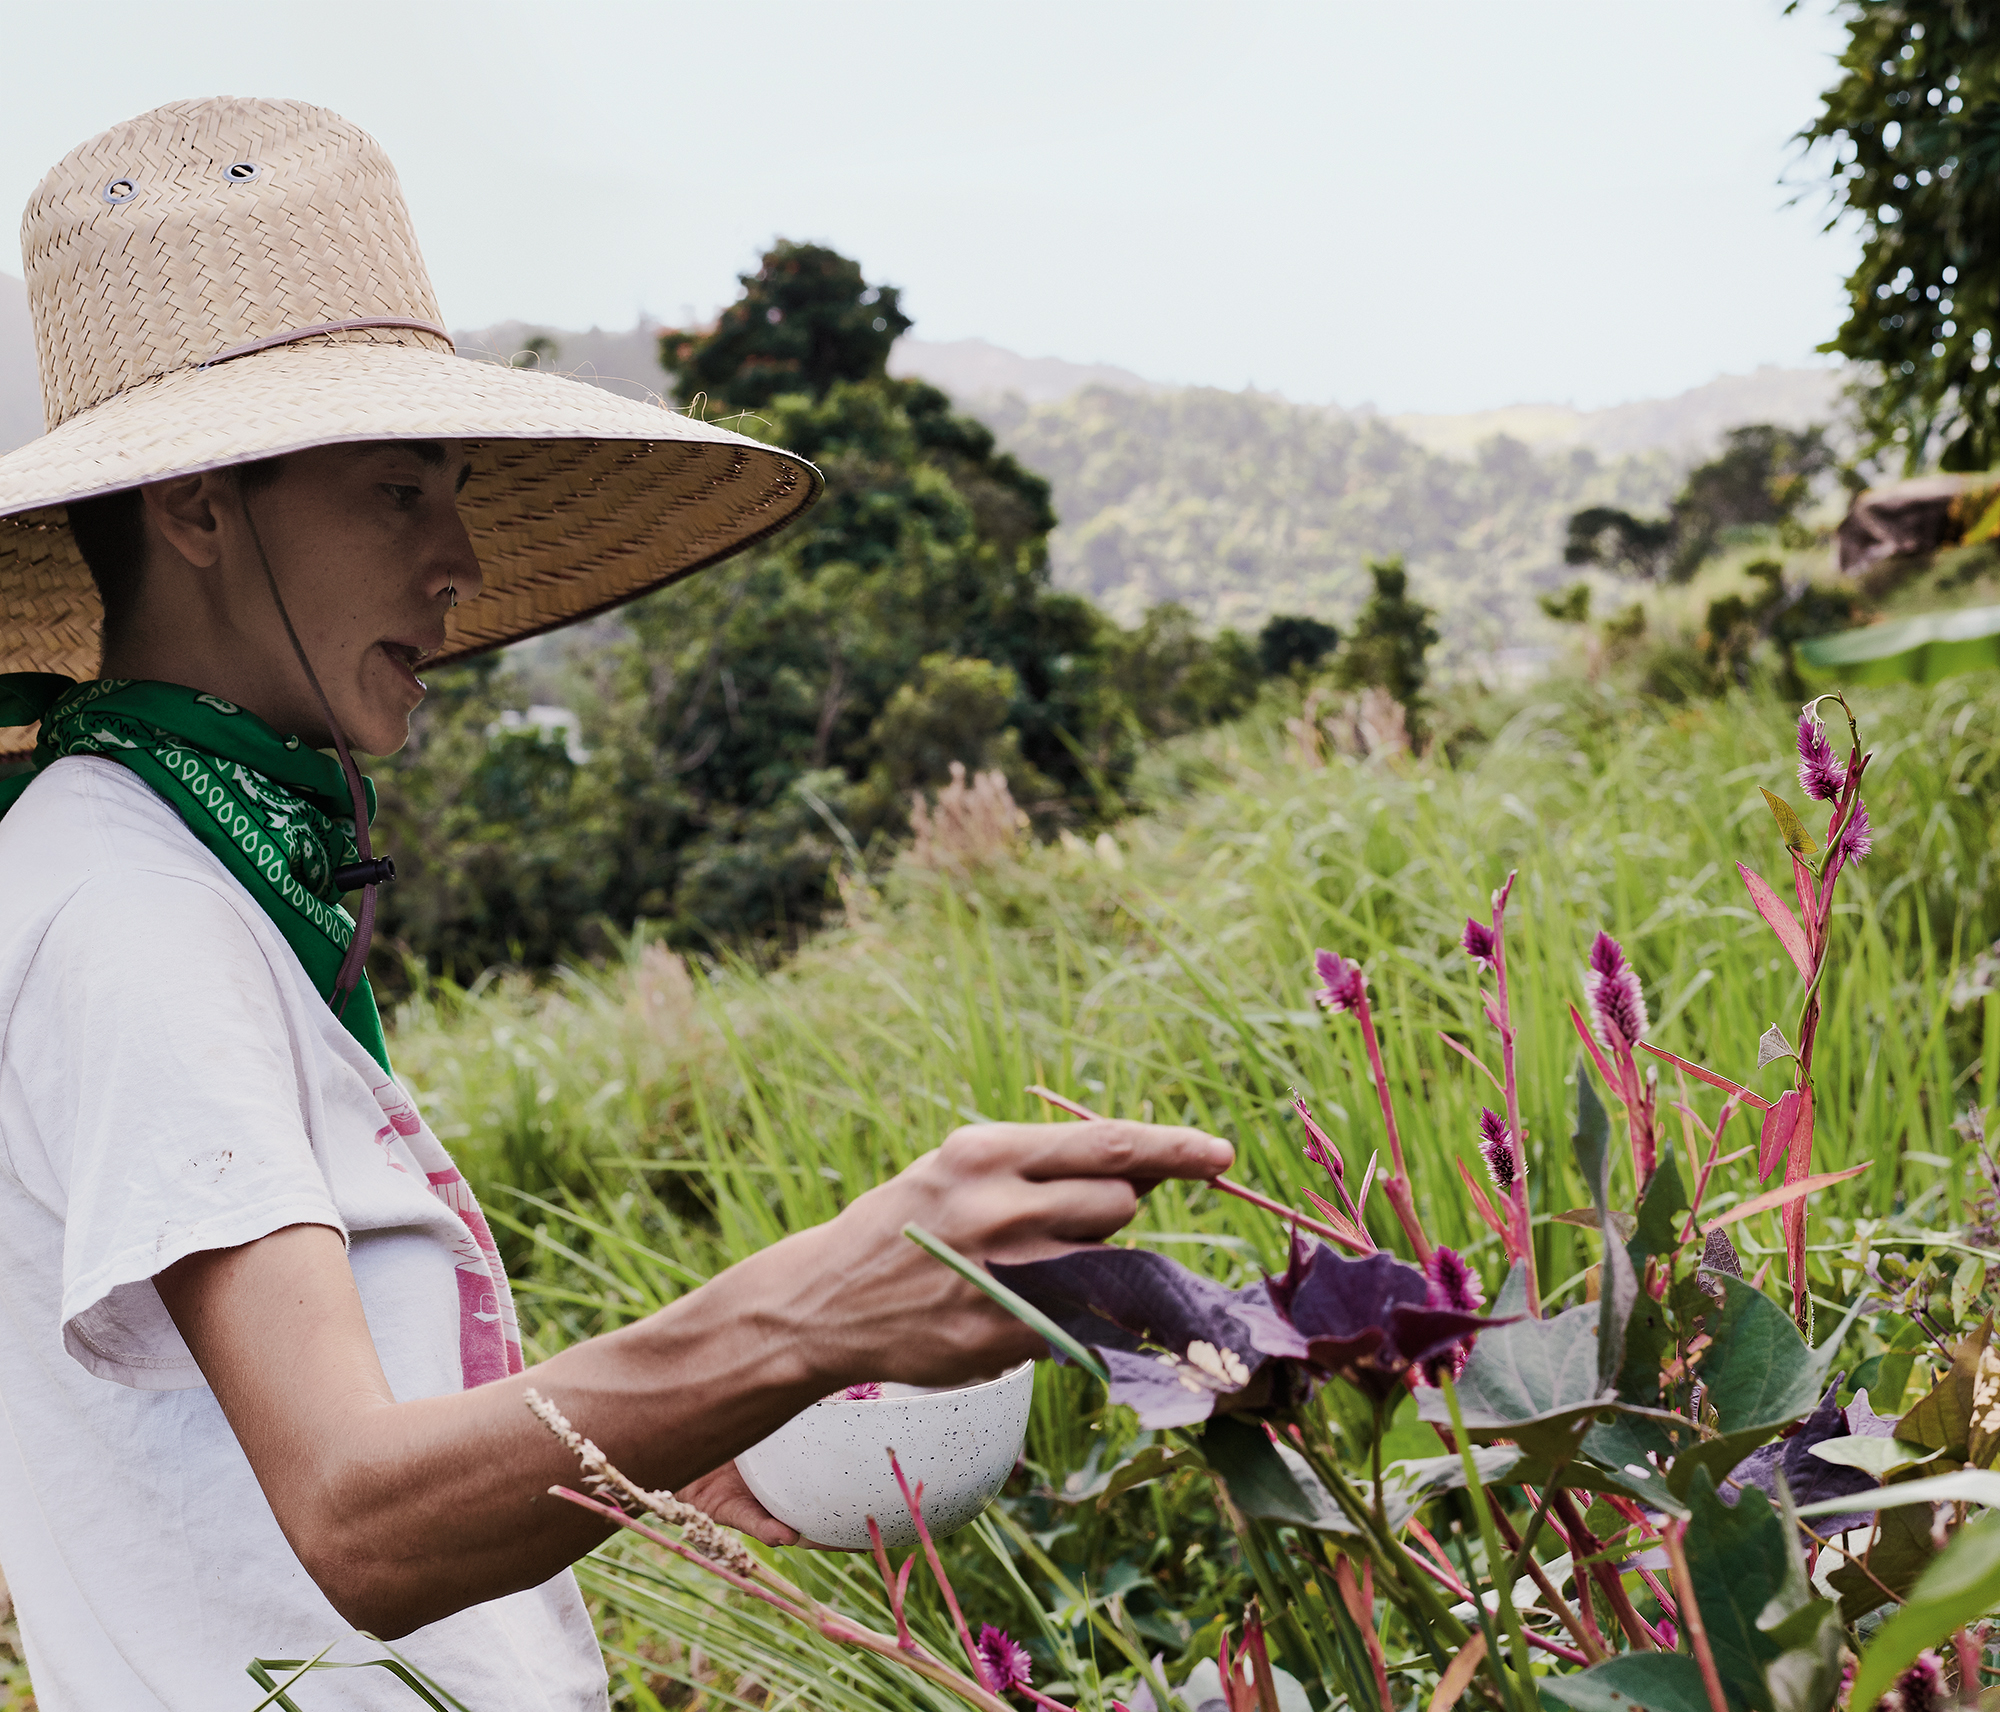 A person wearing a sun hat picking food in a communal farm in Puerto Rico